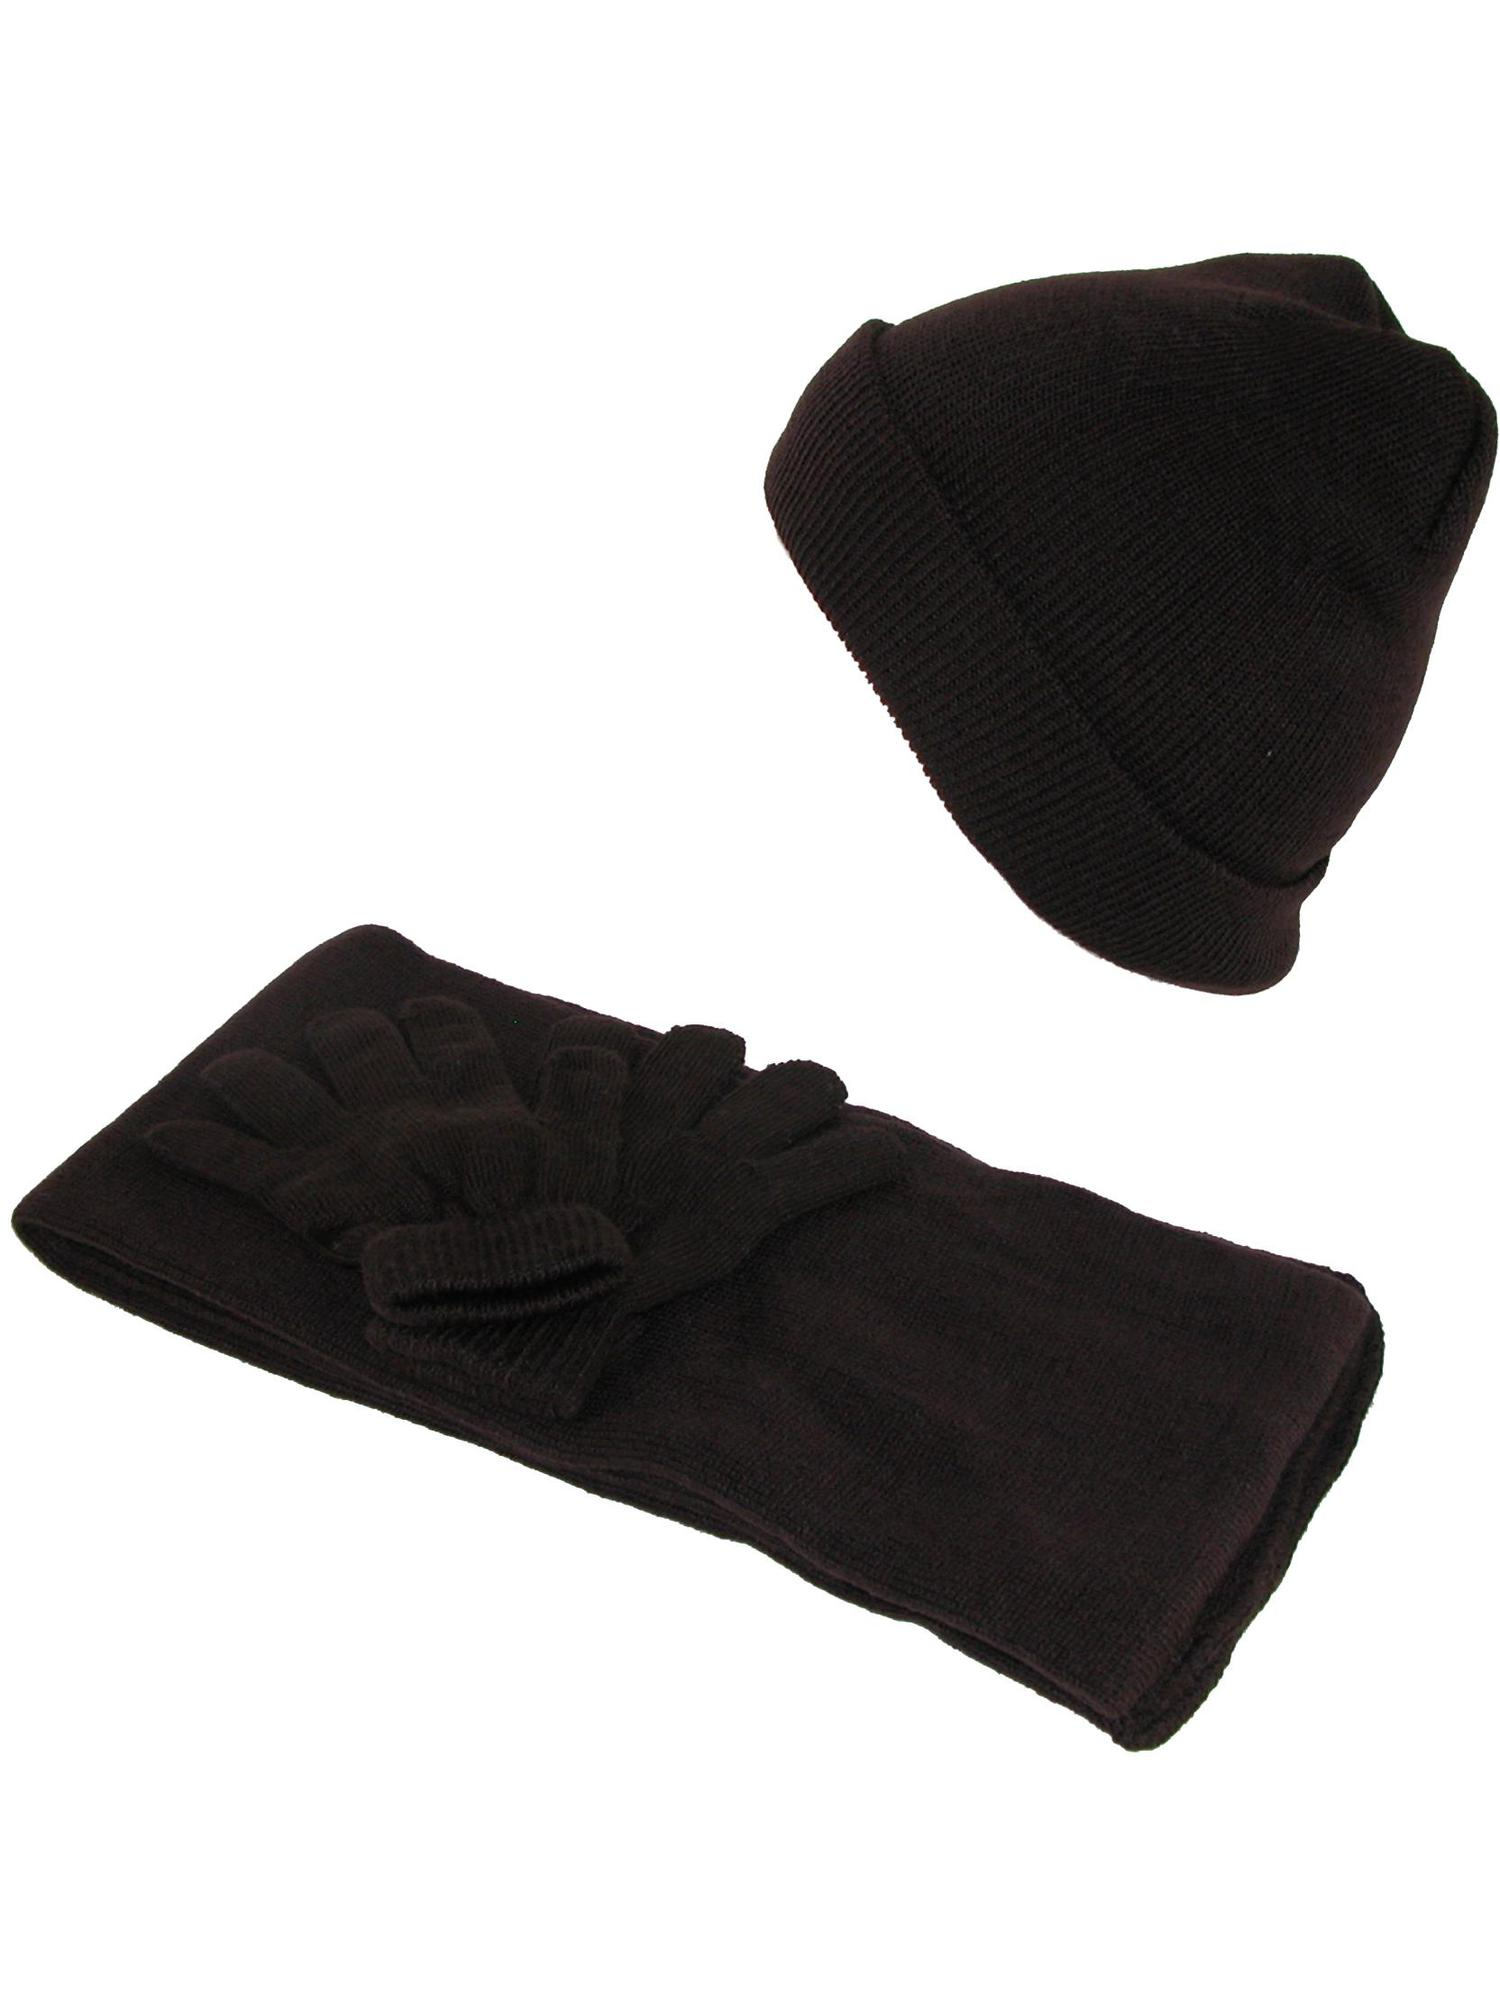 Size one size Kids' Stretch Hat Gloves and Scarf Winter Set, Black